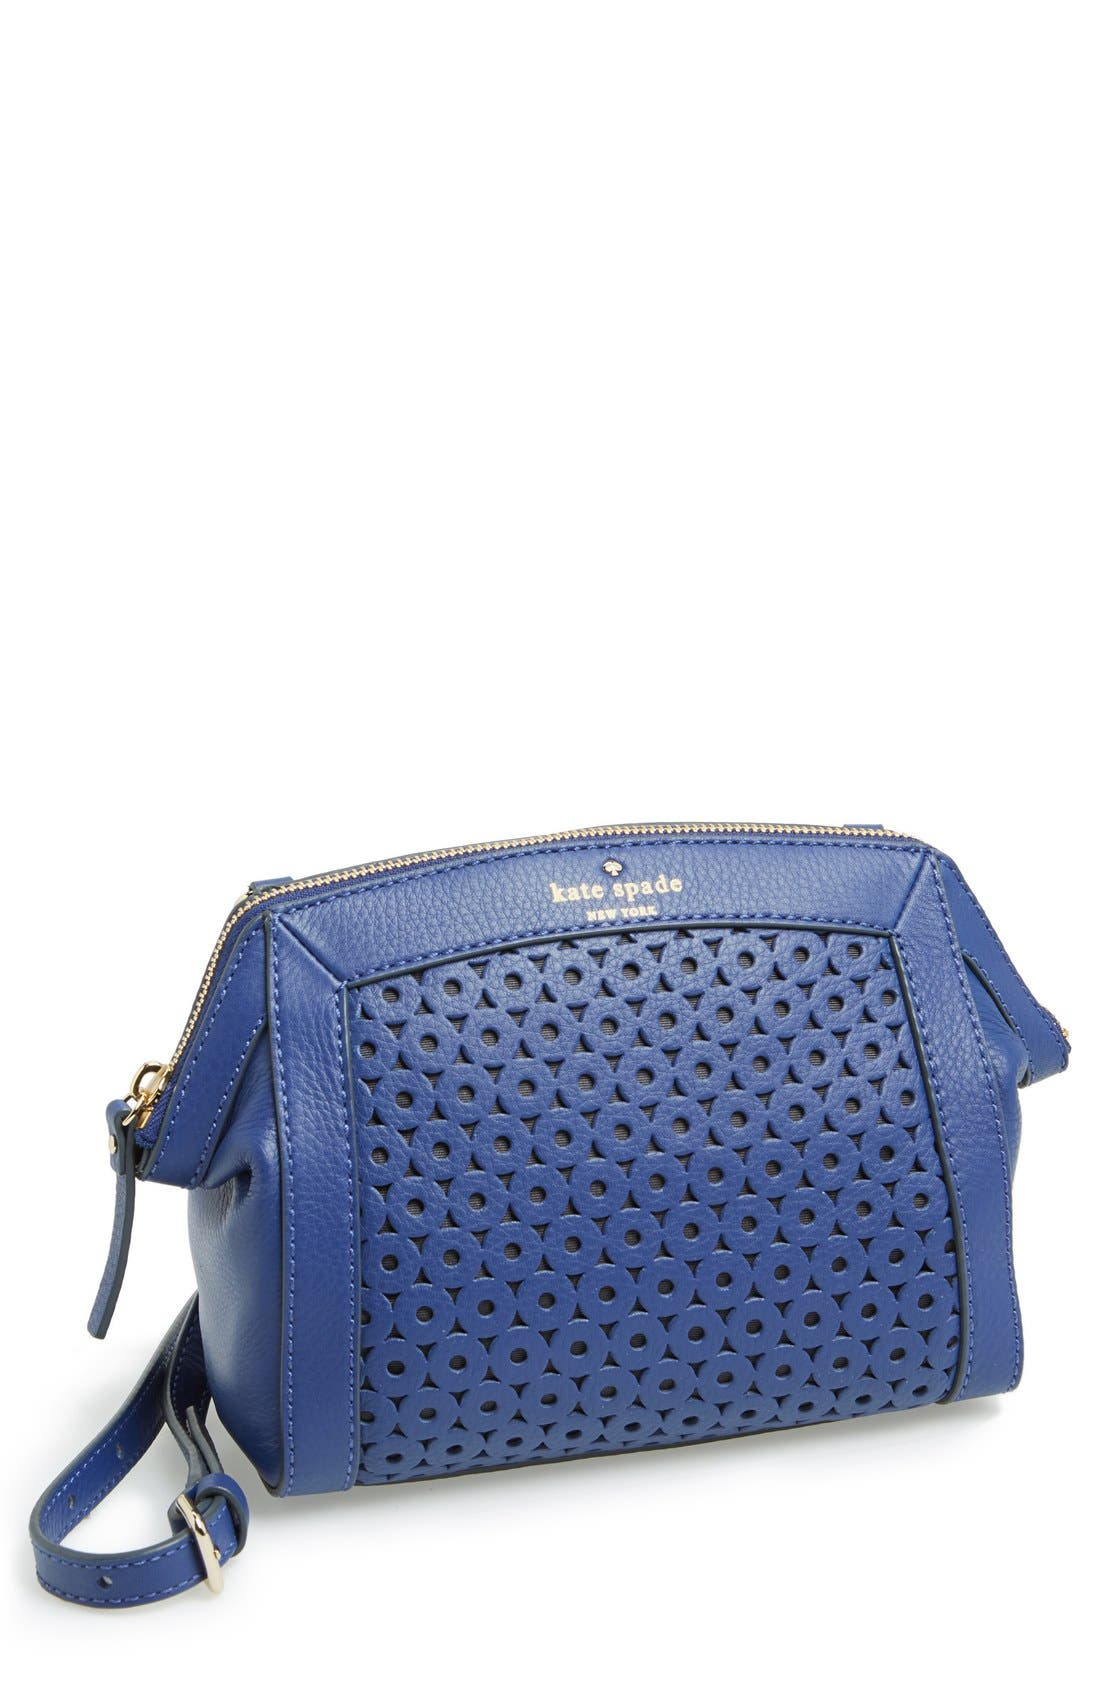 Alternate Image 1 Selected - kate spade new york 'mercer isle - sienna' crossbody bag